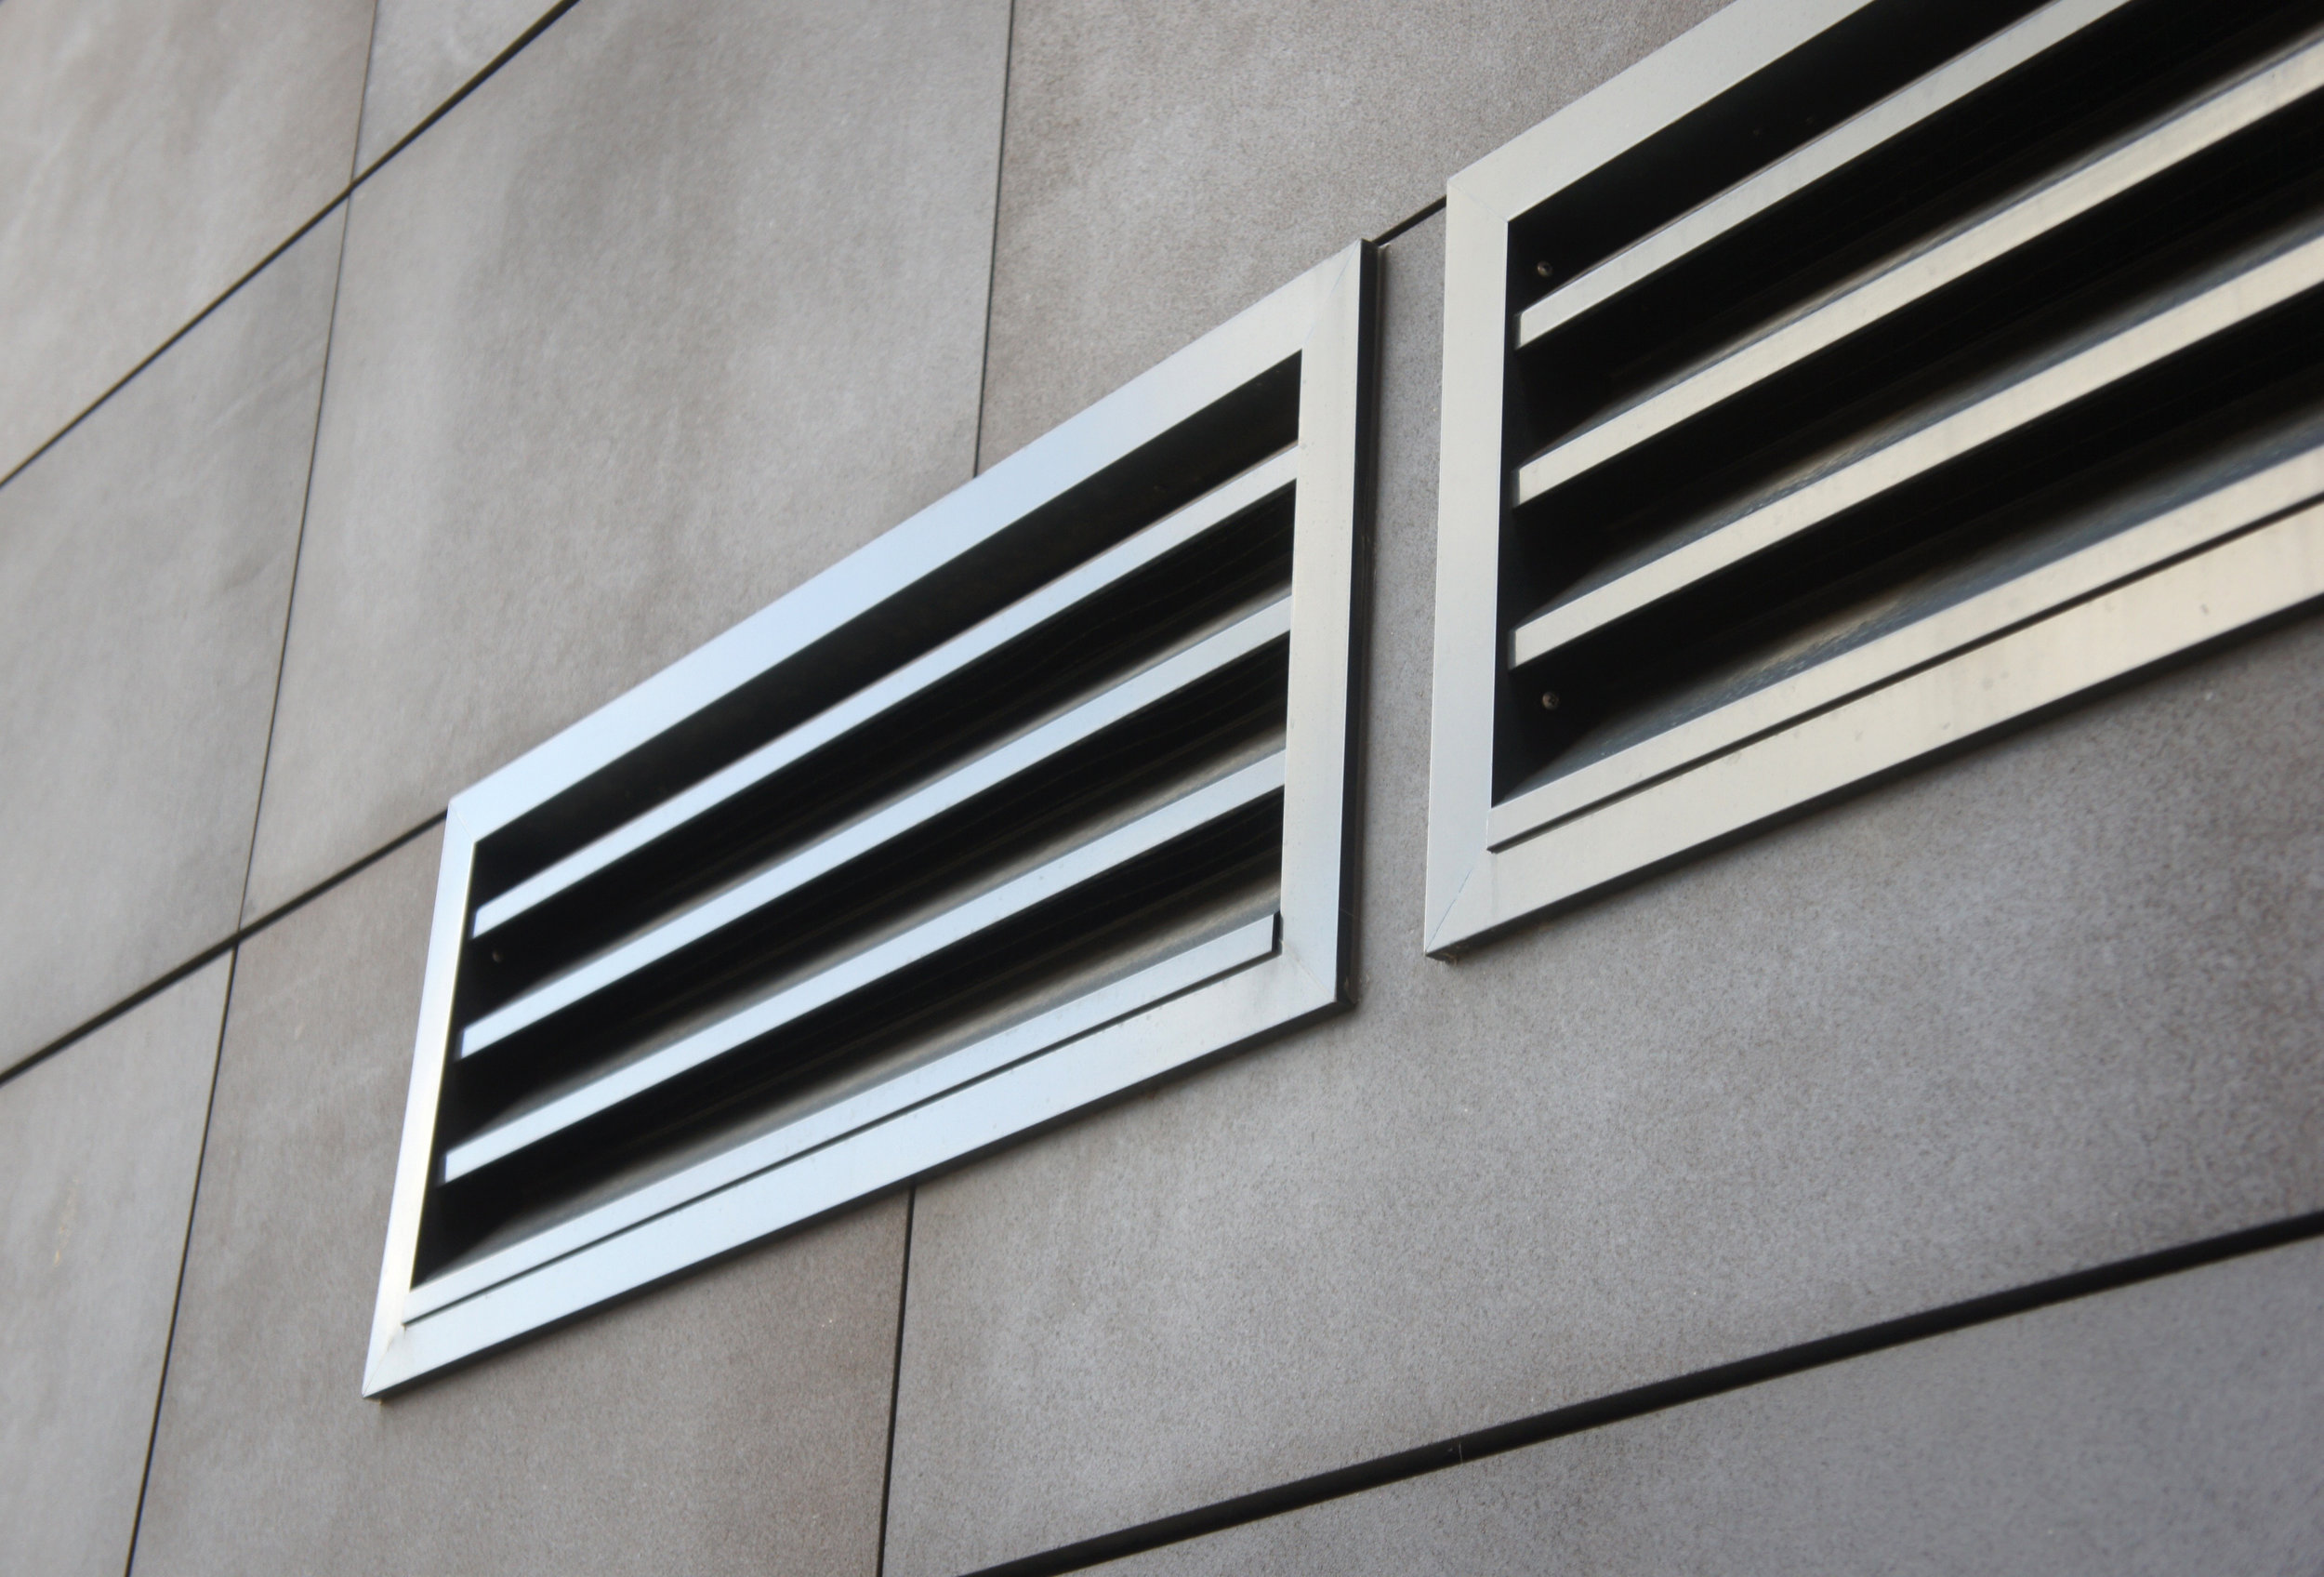 humidification-for-ventilated-spaces